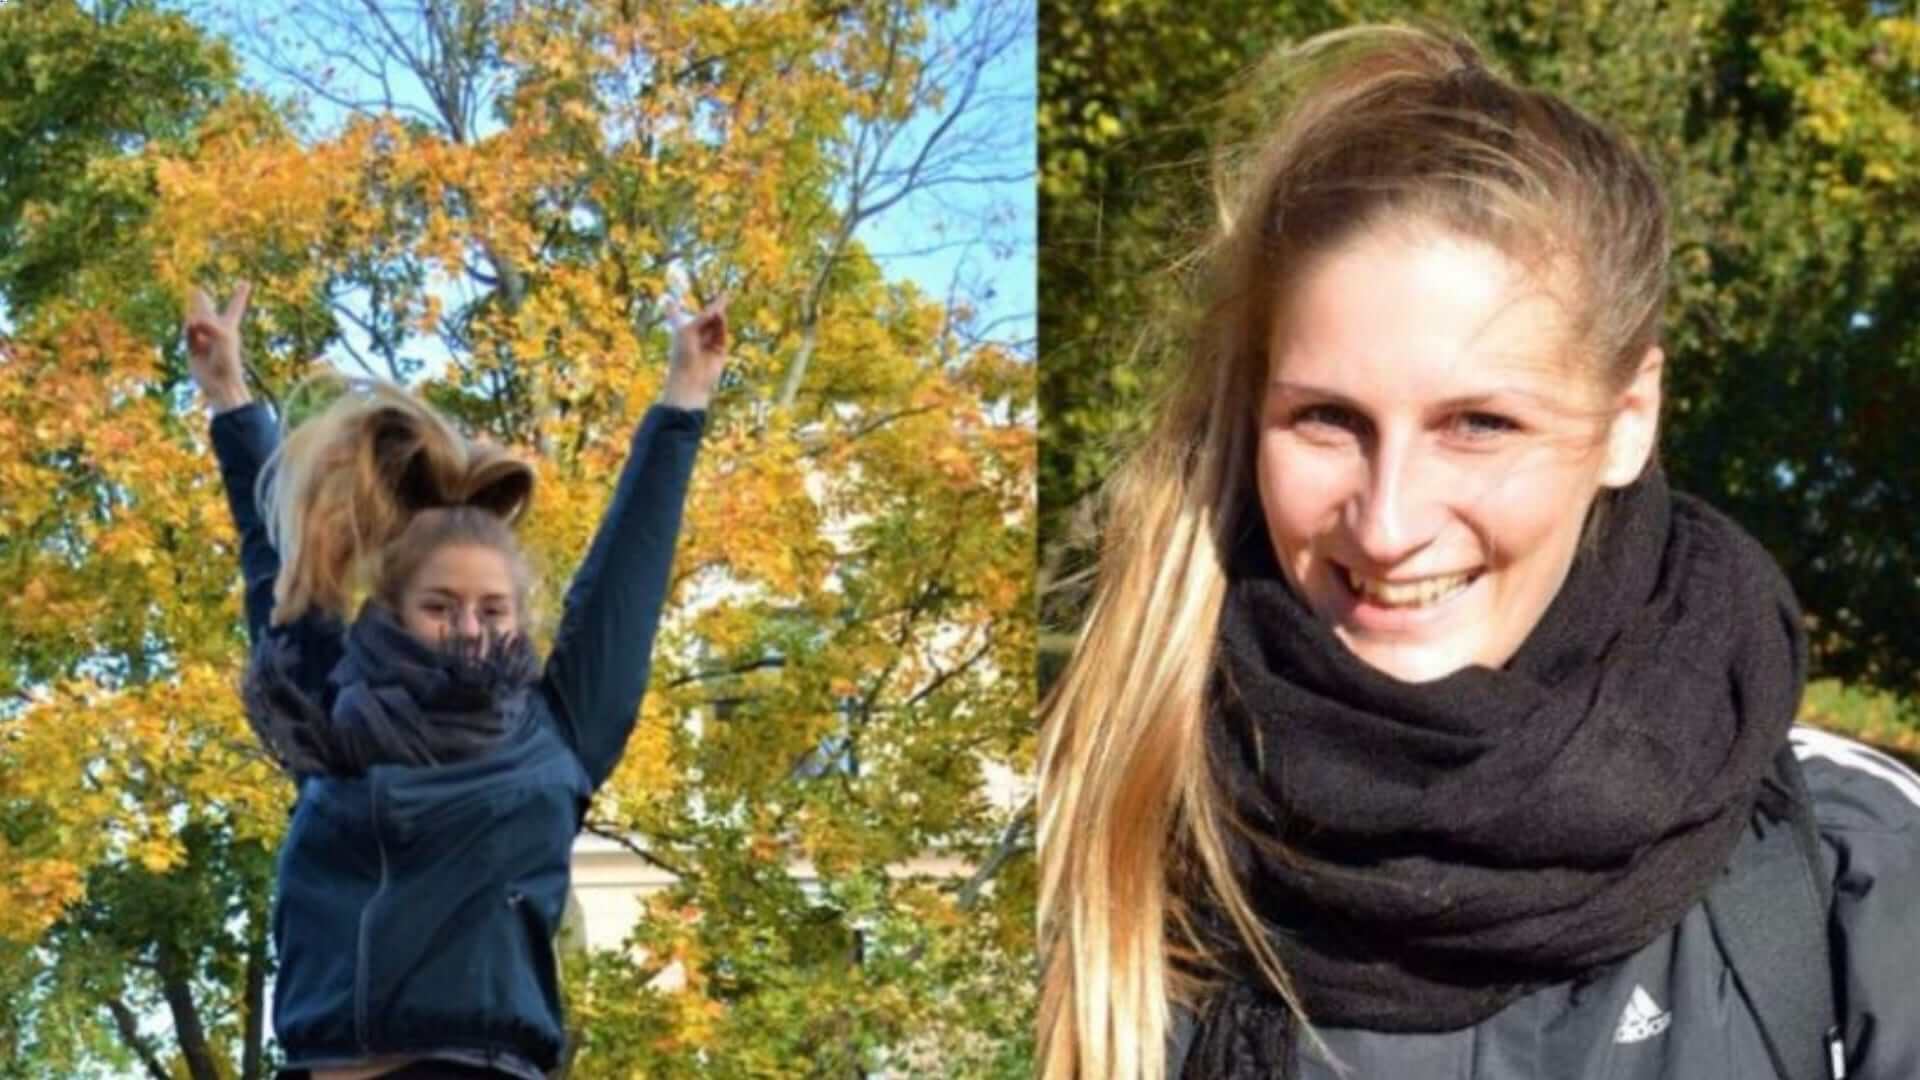 Two smiling woman in front of trees with orange leaves during fall and one of them is jumping in Helsinki.